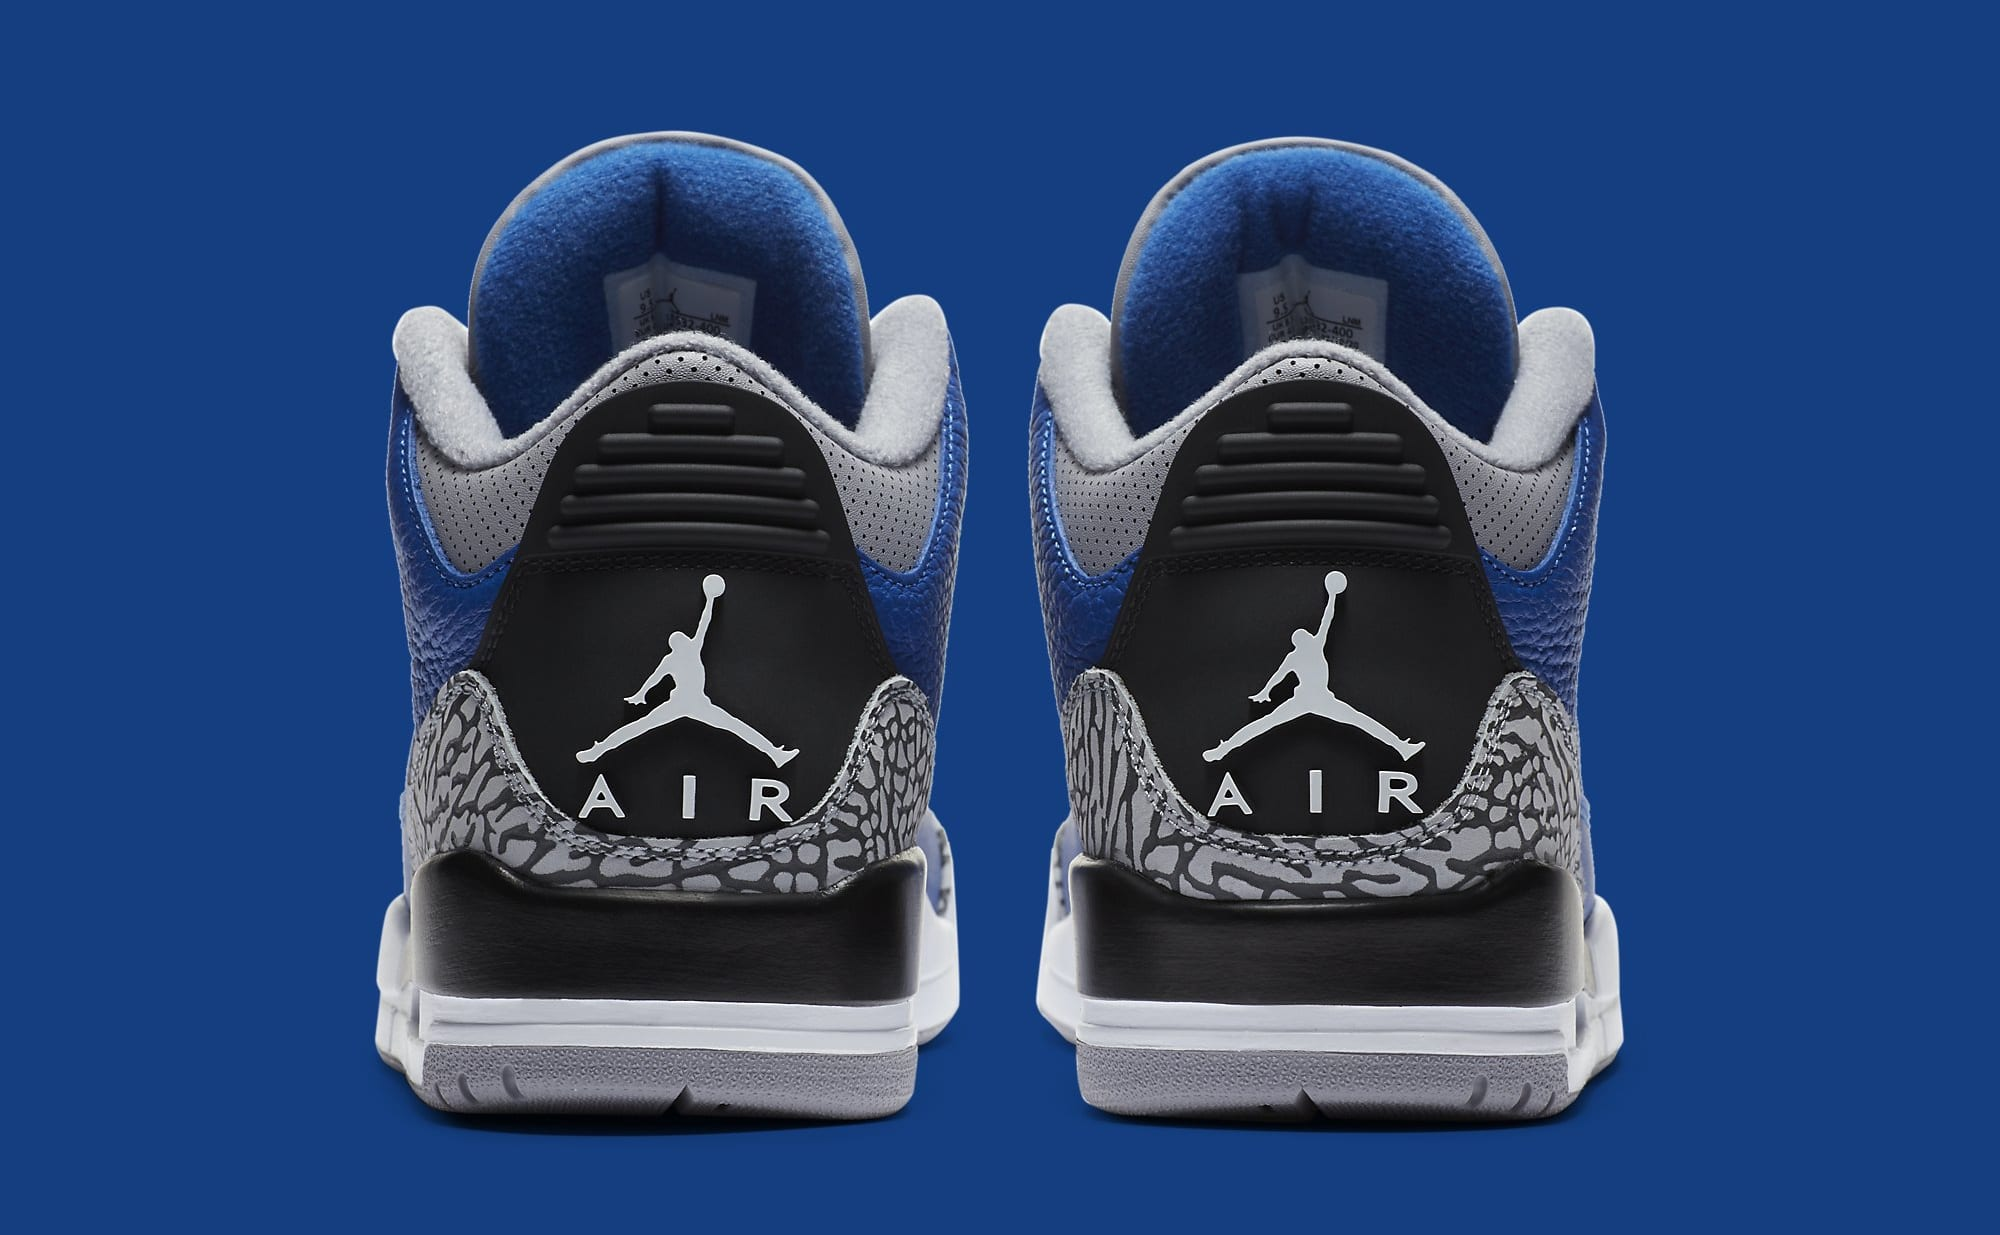 Air Jordan 3 III Retro 'Varsity Royal' CT8532-400 Heel